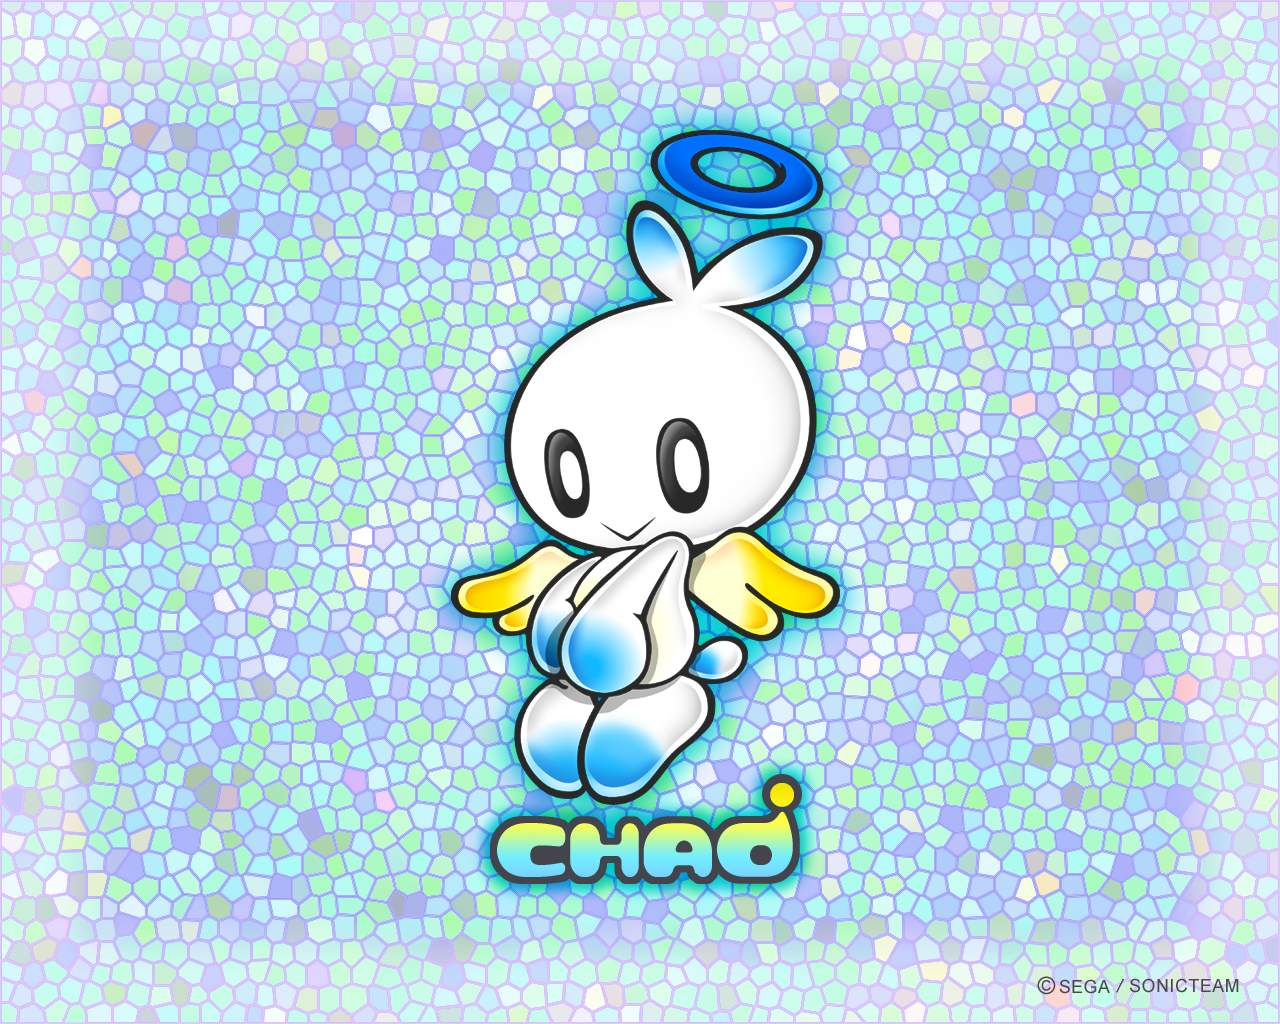 Chao World Most Common Chao Types